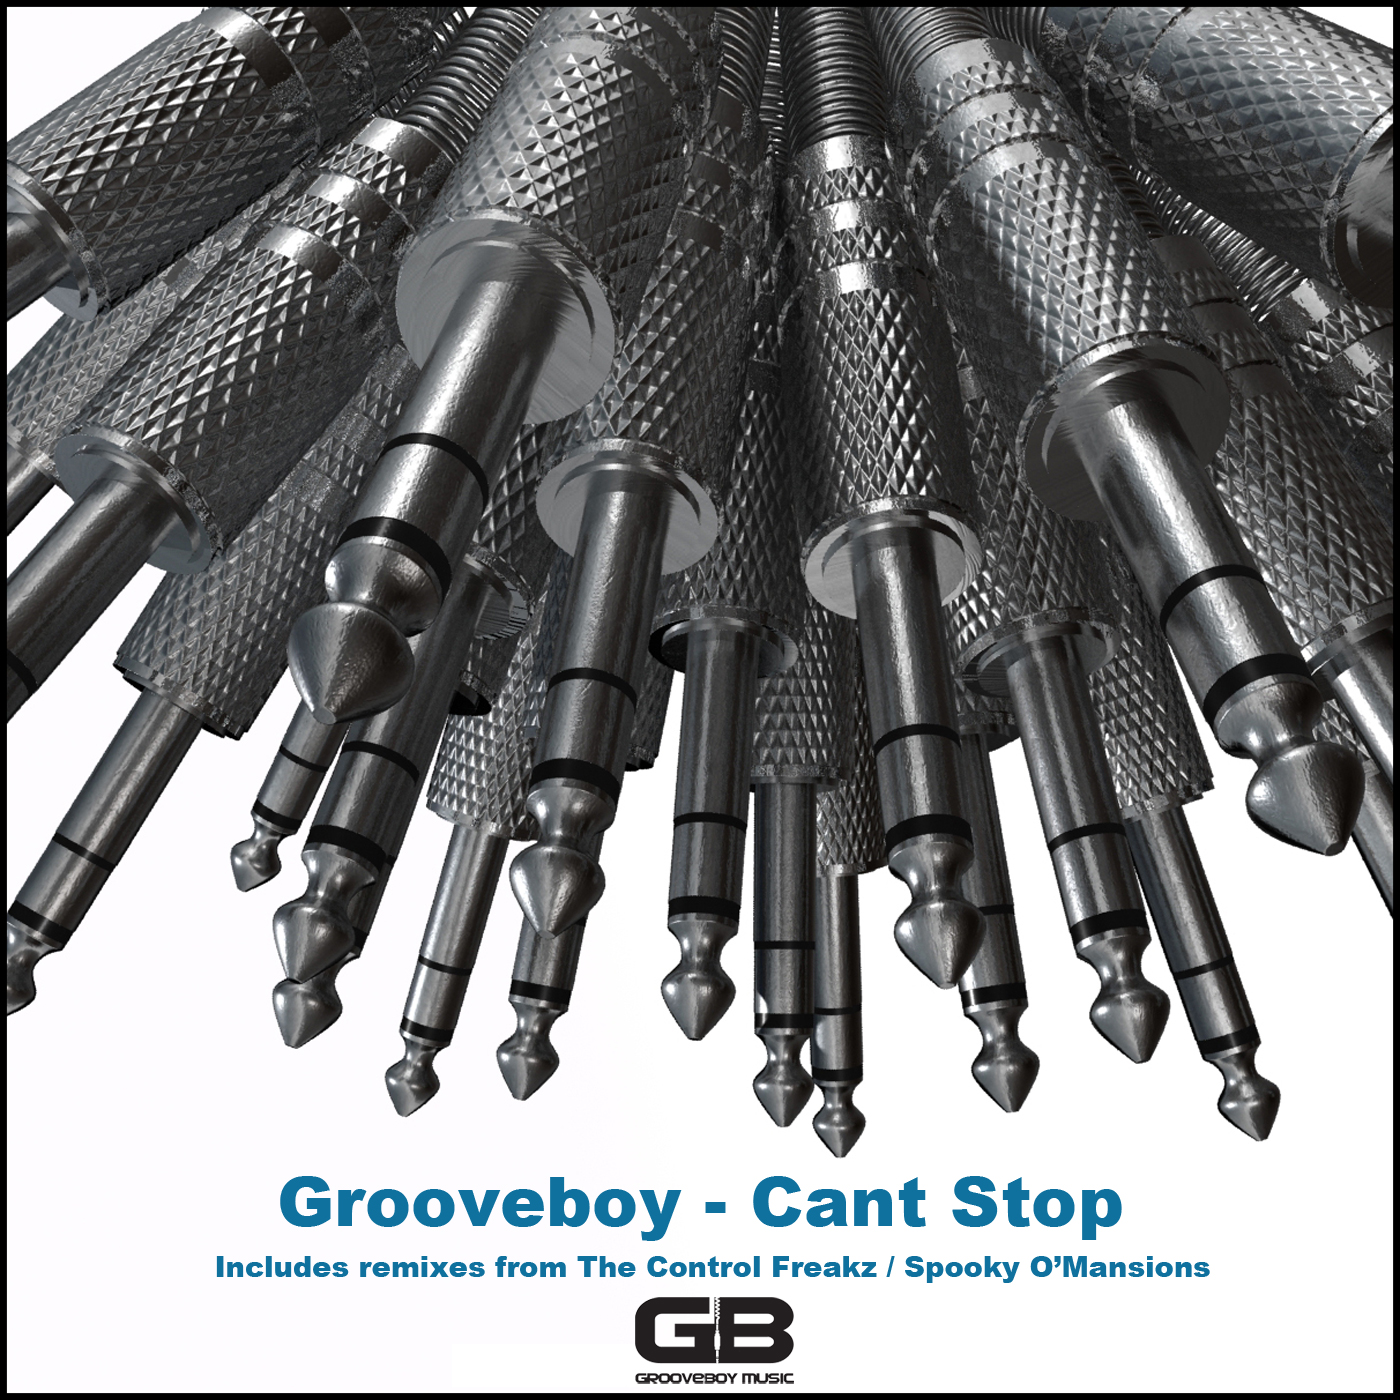 Grooveboy - Cant Stop